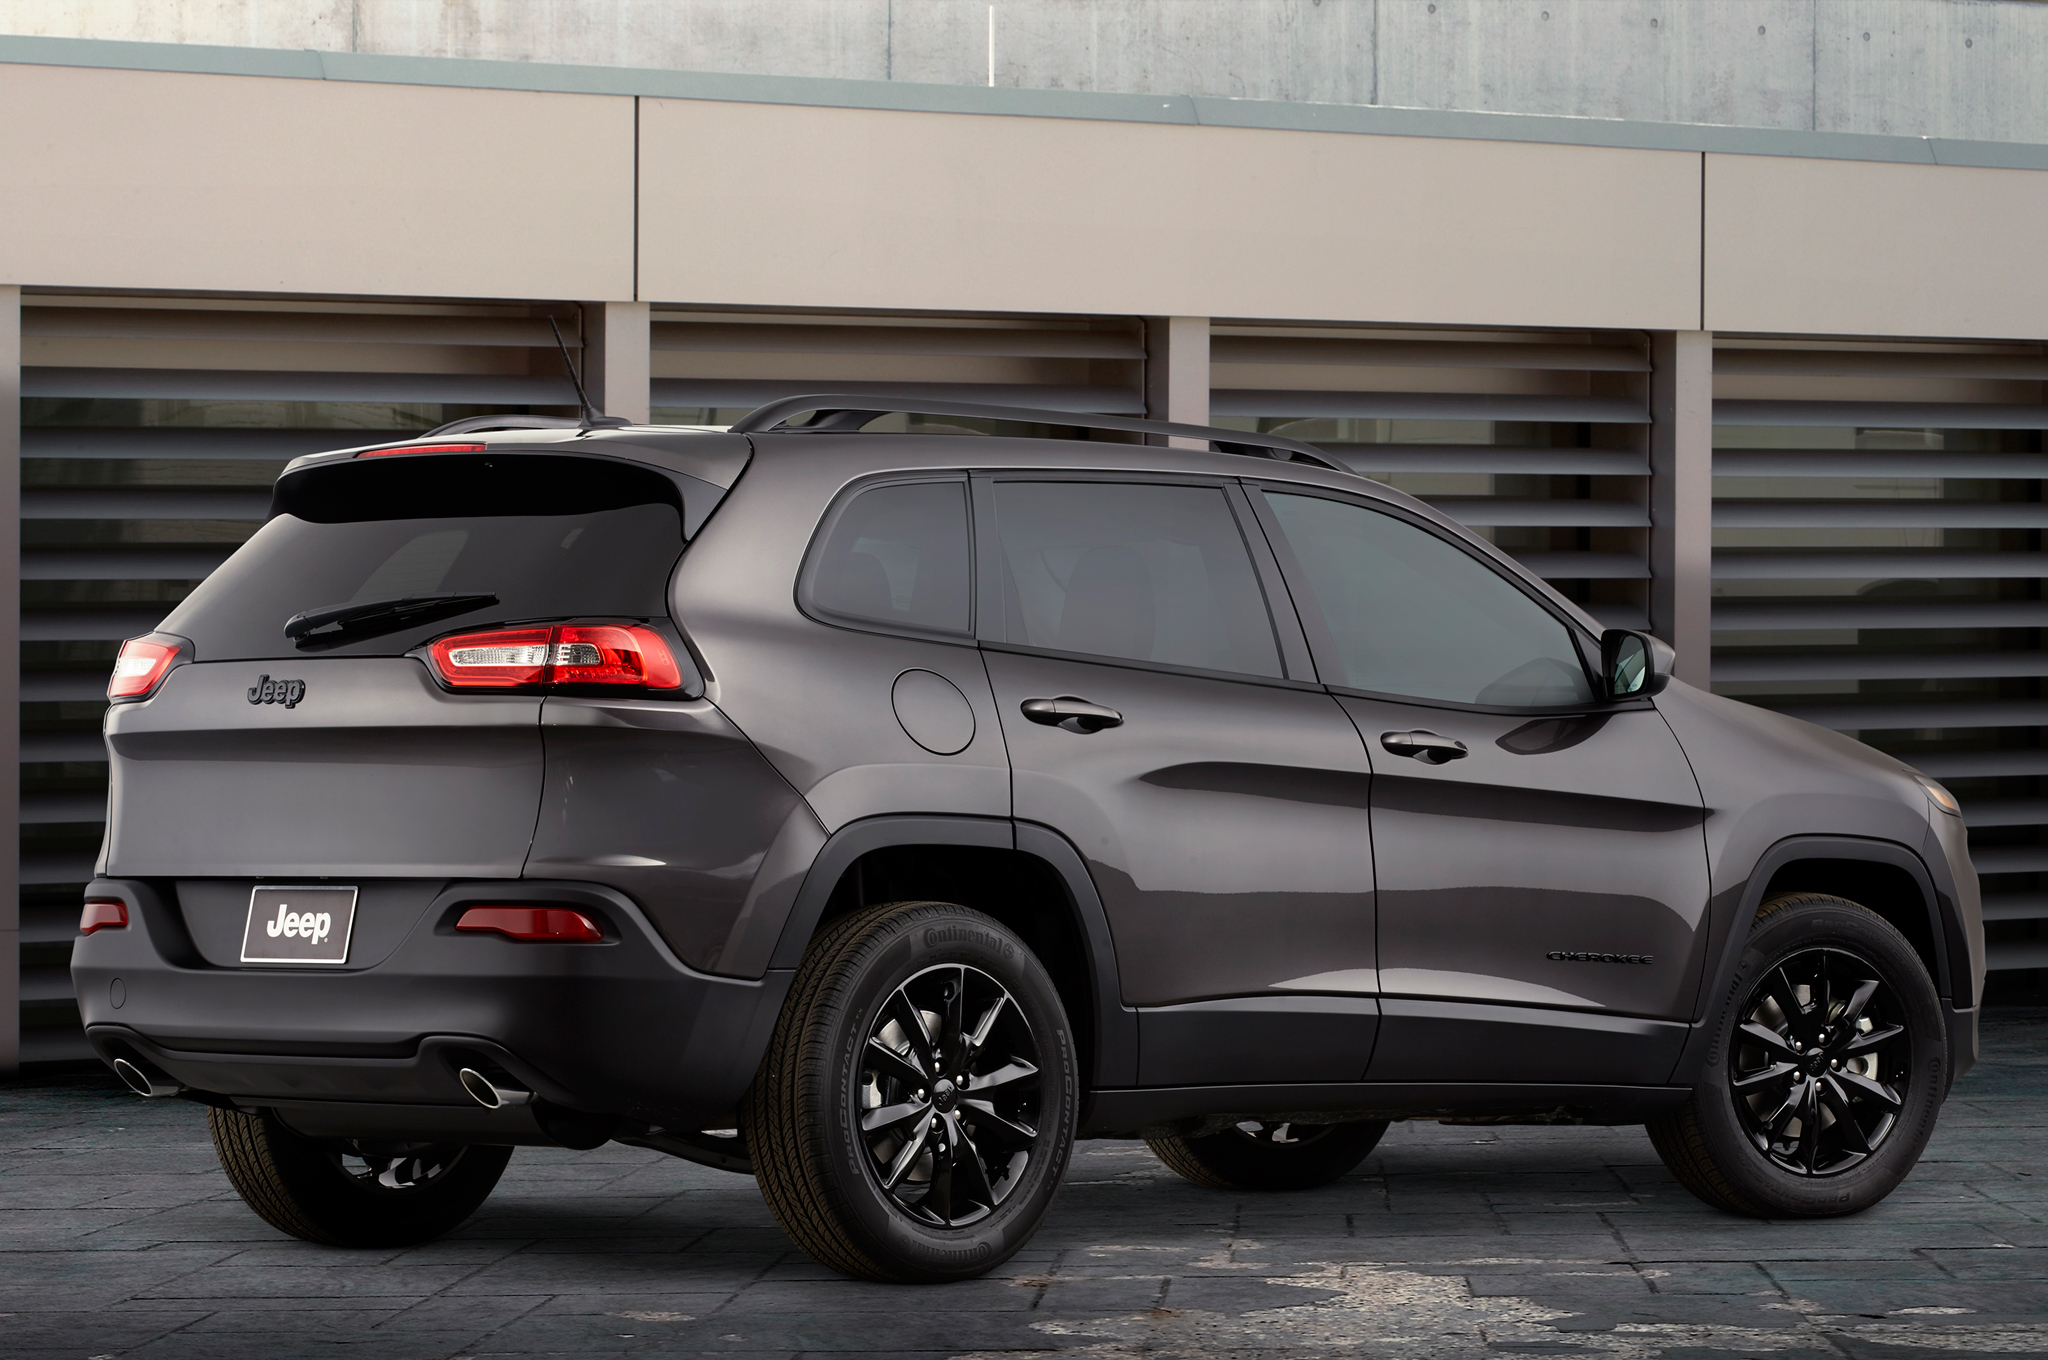 Chrysler July 2014 Sales Jump 20 Percent, Jeep Grows 41 Percent